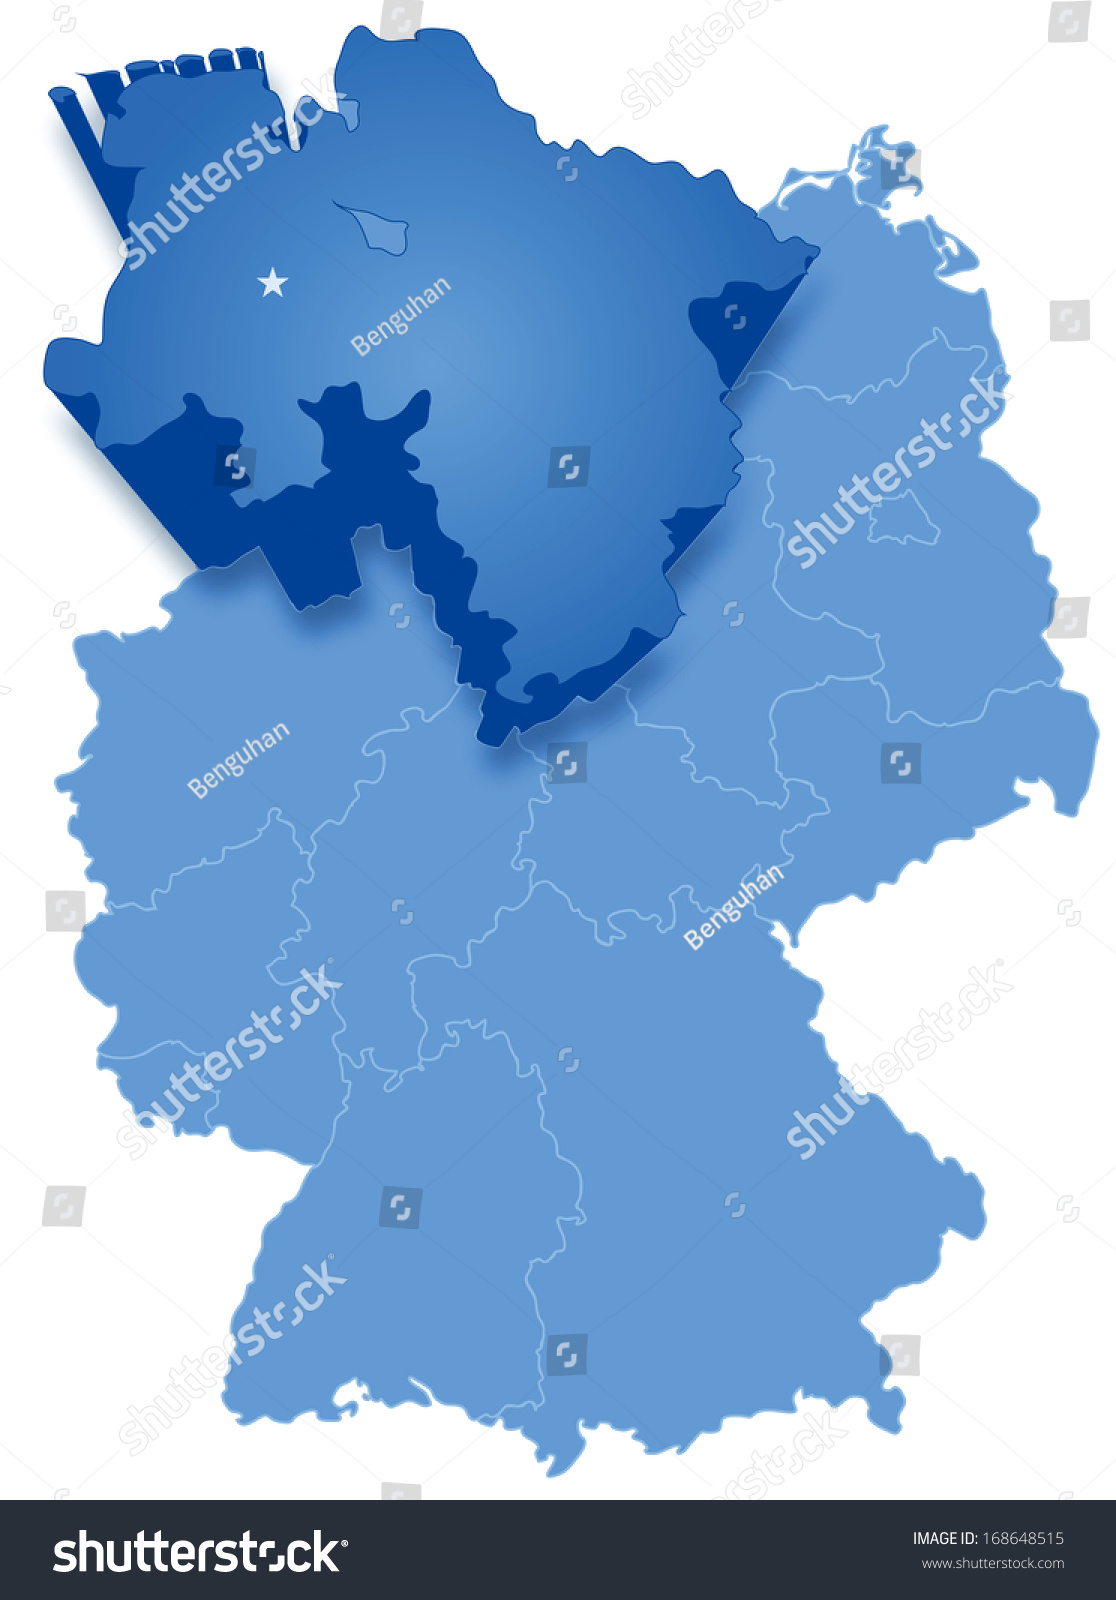 Map Germany Netherlands%0A Political Map Germany Political Map Germany Political map of Germany with  all states where Lower Saxony